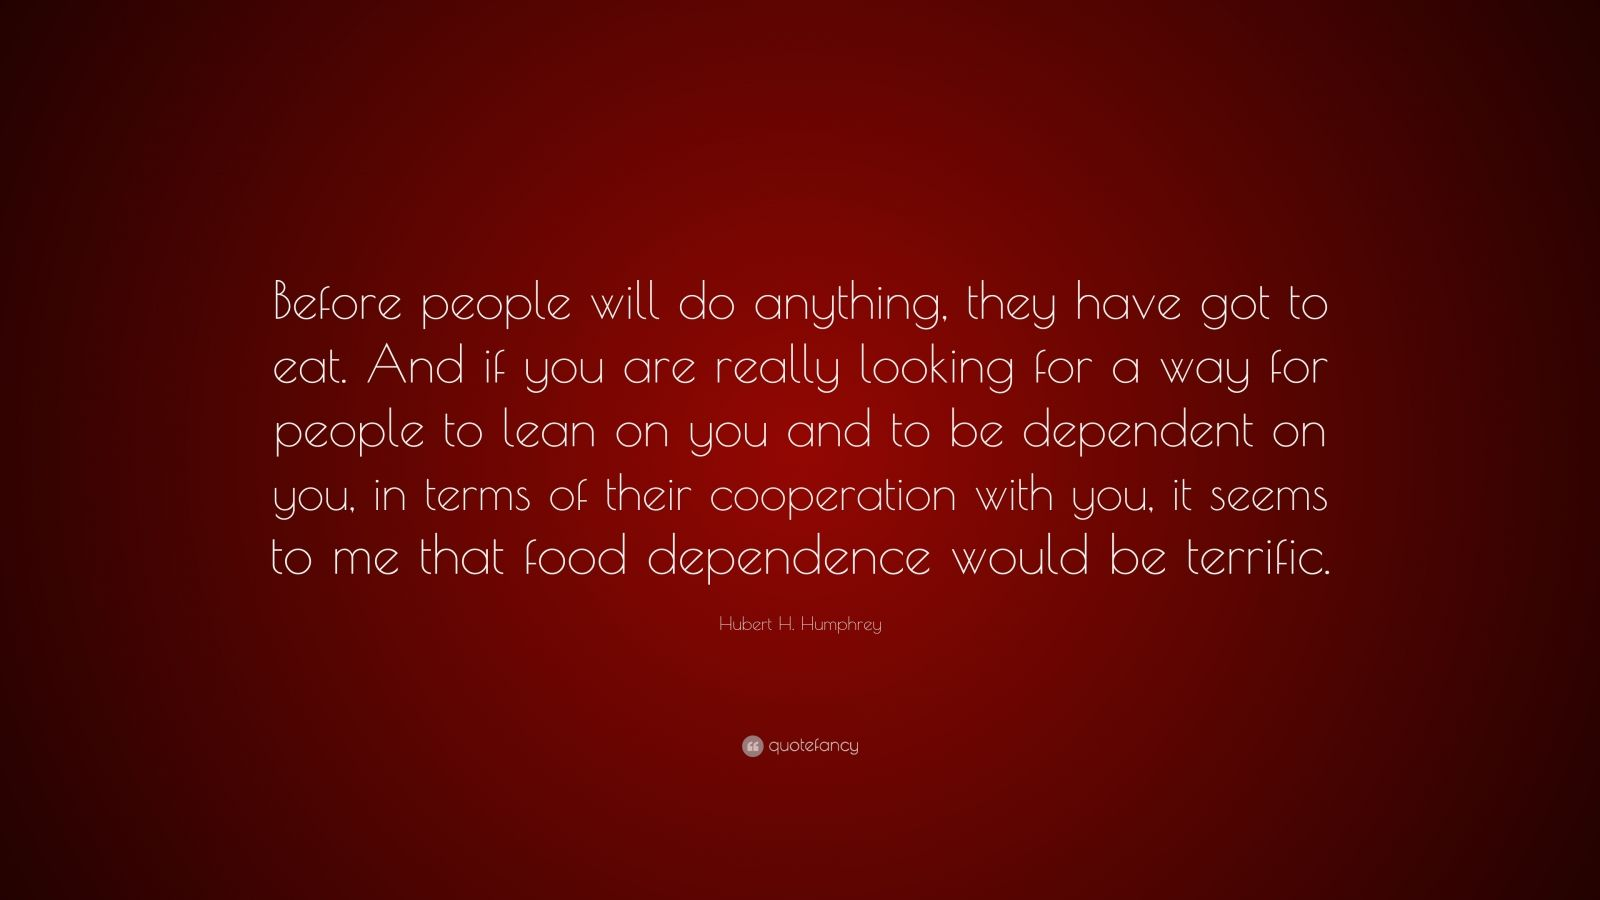 """Hubert H. Humphrey Quote: """"Before people will do anything, they have got to eat. And if you are really looking for a way for people to lean on you and to be dependent on you, in terms of their cooperation with you, it seems to me that food dependence would be terrific."""""""